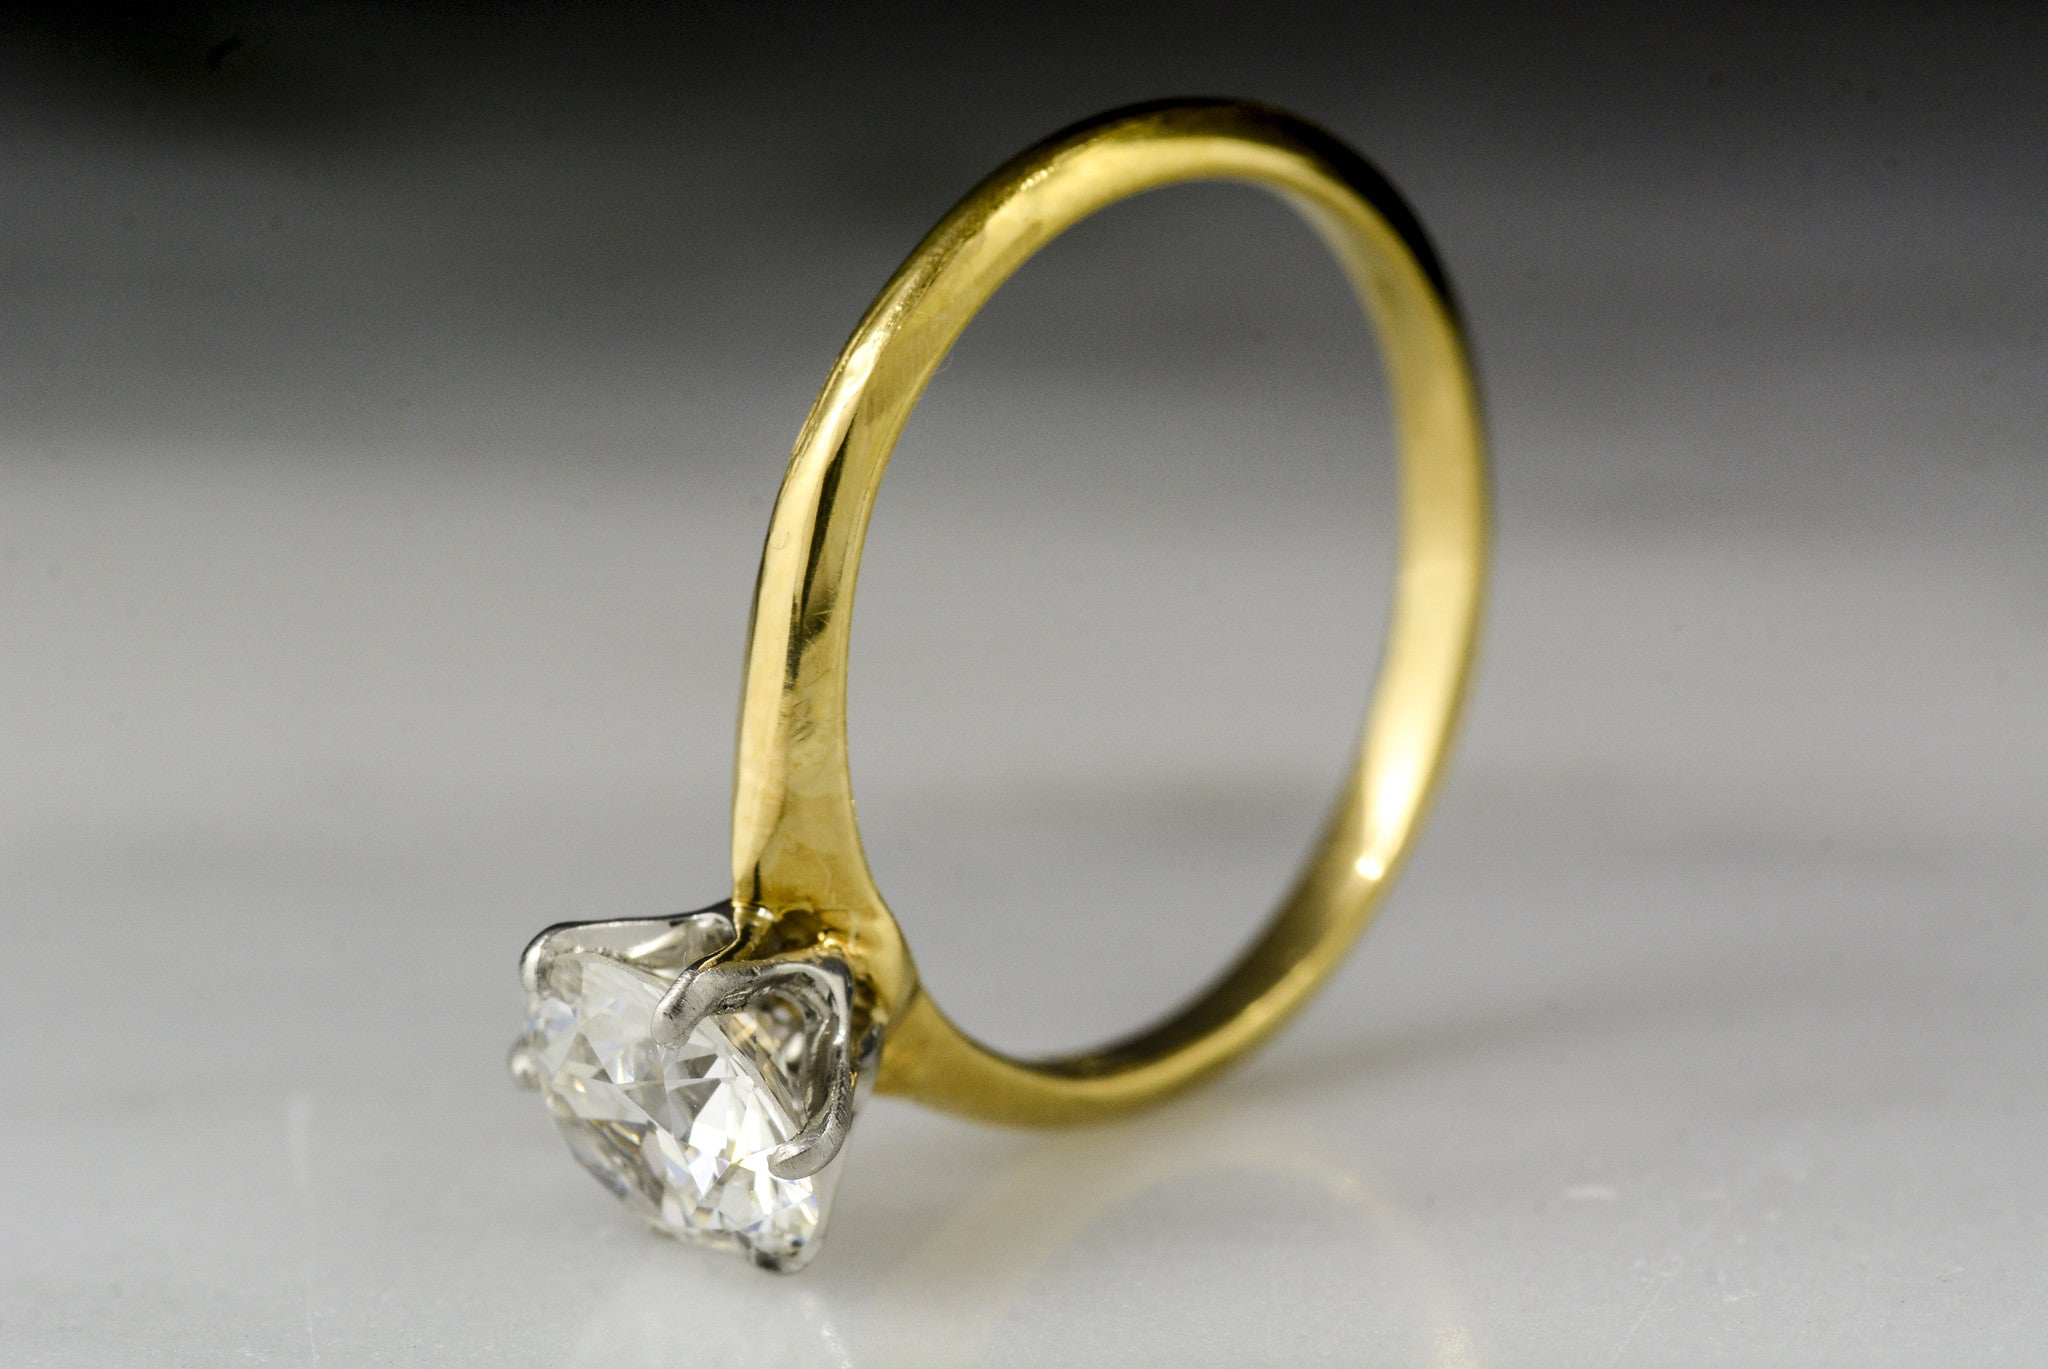 3a5535adf Vintage Tiffany & Co. Platinum and 18K Yellow Gold Solitaire Engagement Ring  with a GIA Certified .95 Carat Old European Cut Diamond